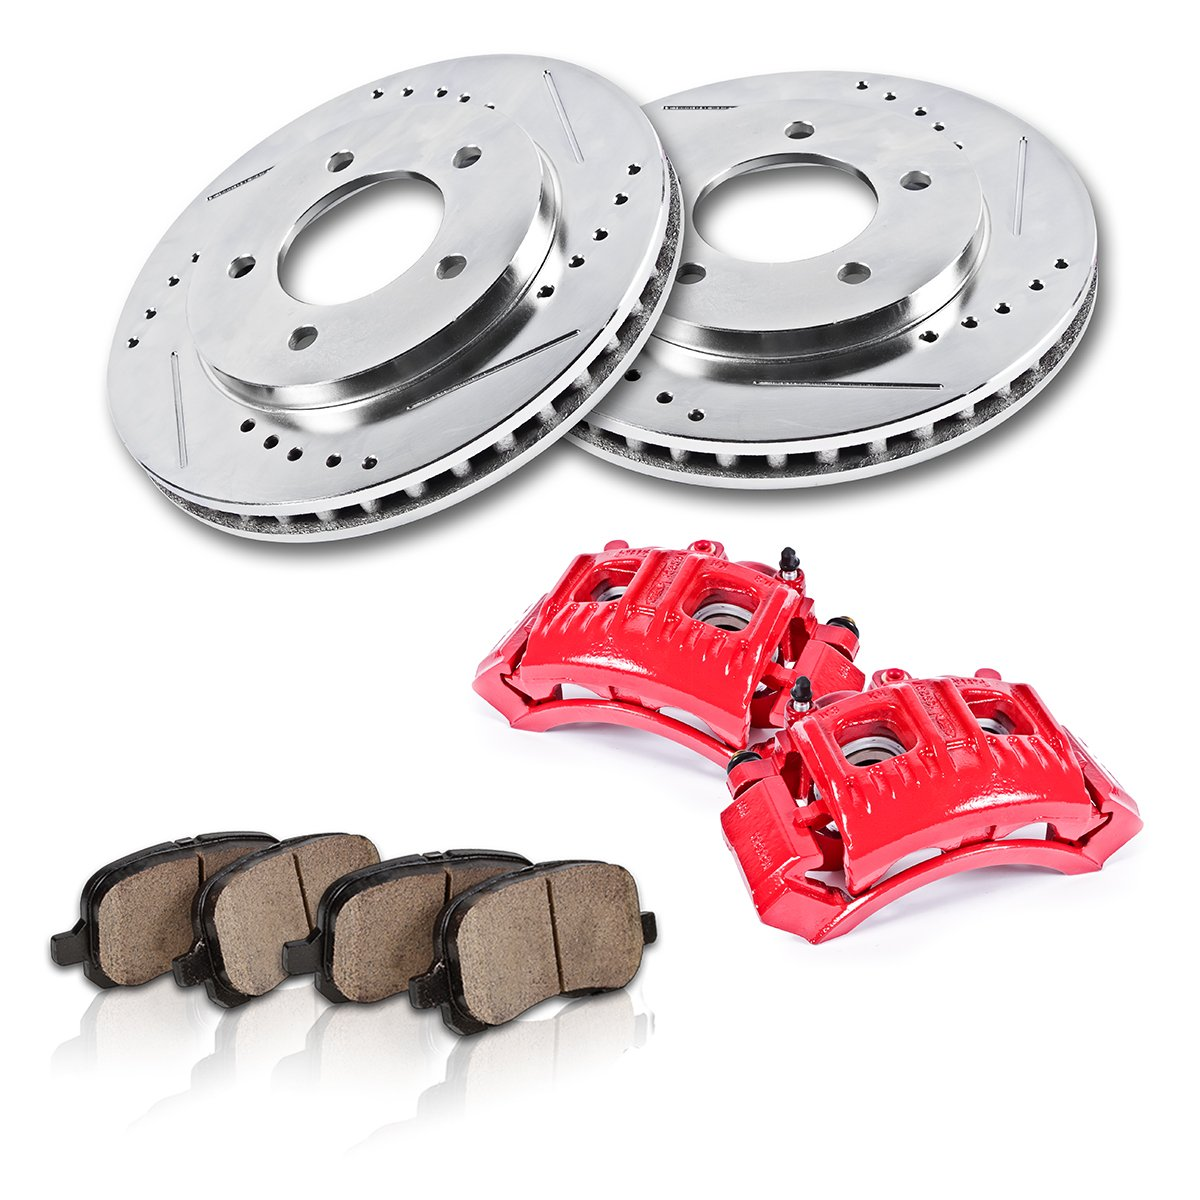 Ceramic Pads Performance Kit Quiet Low Dust 2 4 Calipers + FRONT Powder Coated Red 2 Rotors